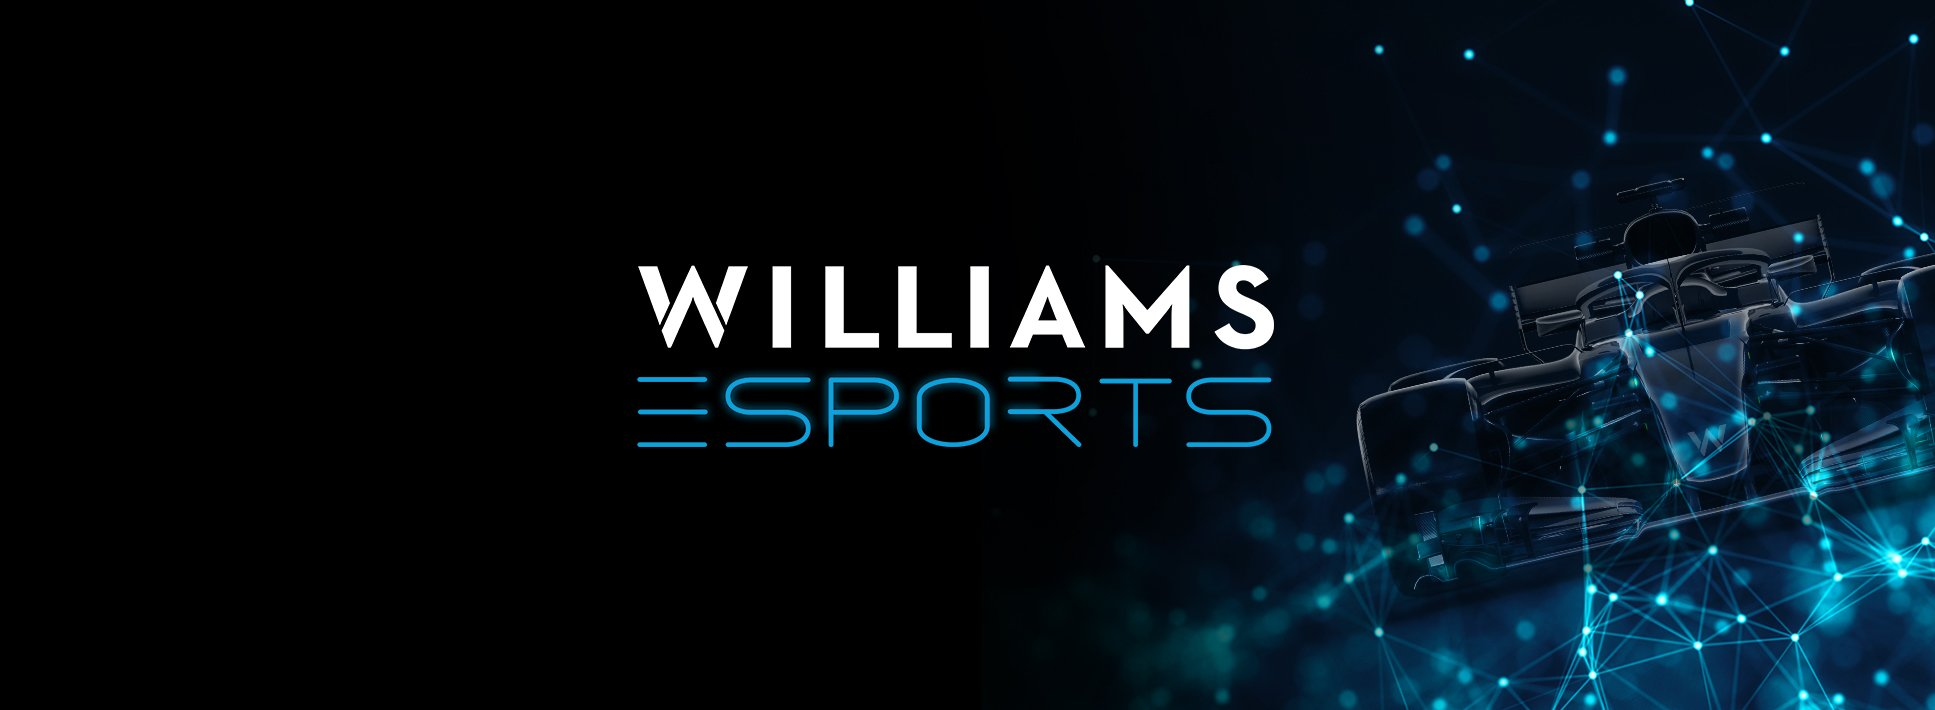 Williams eSports venture launched ahead of F1 eSports Pro Series